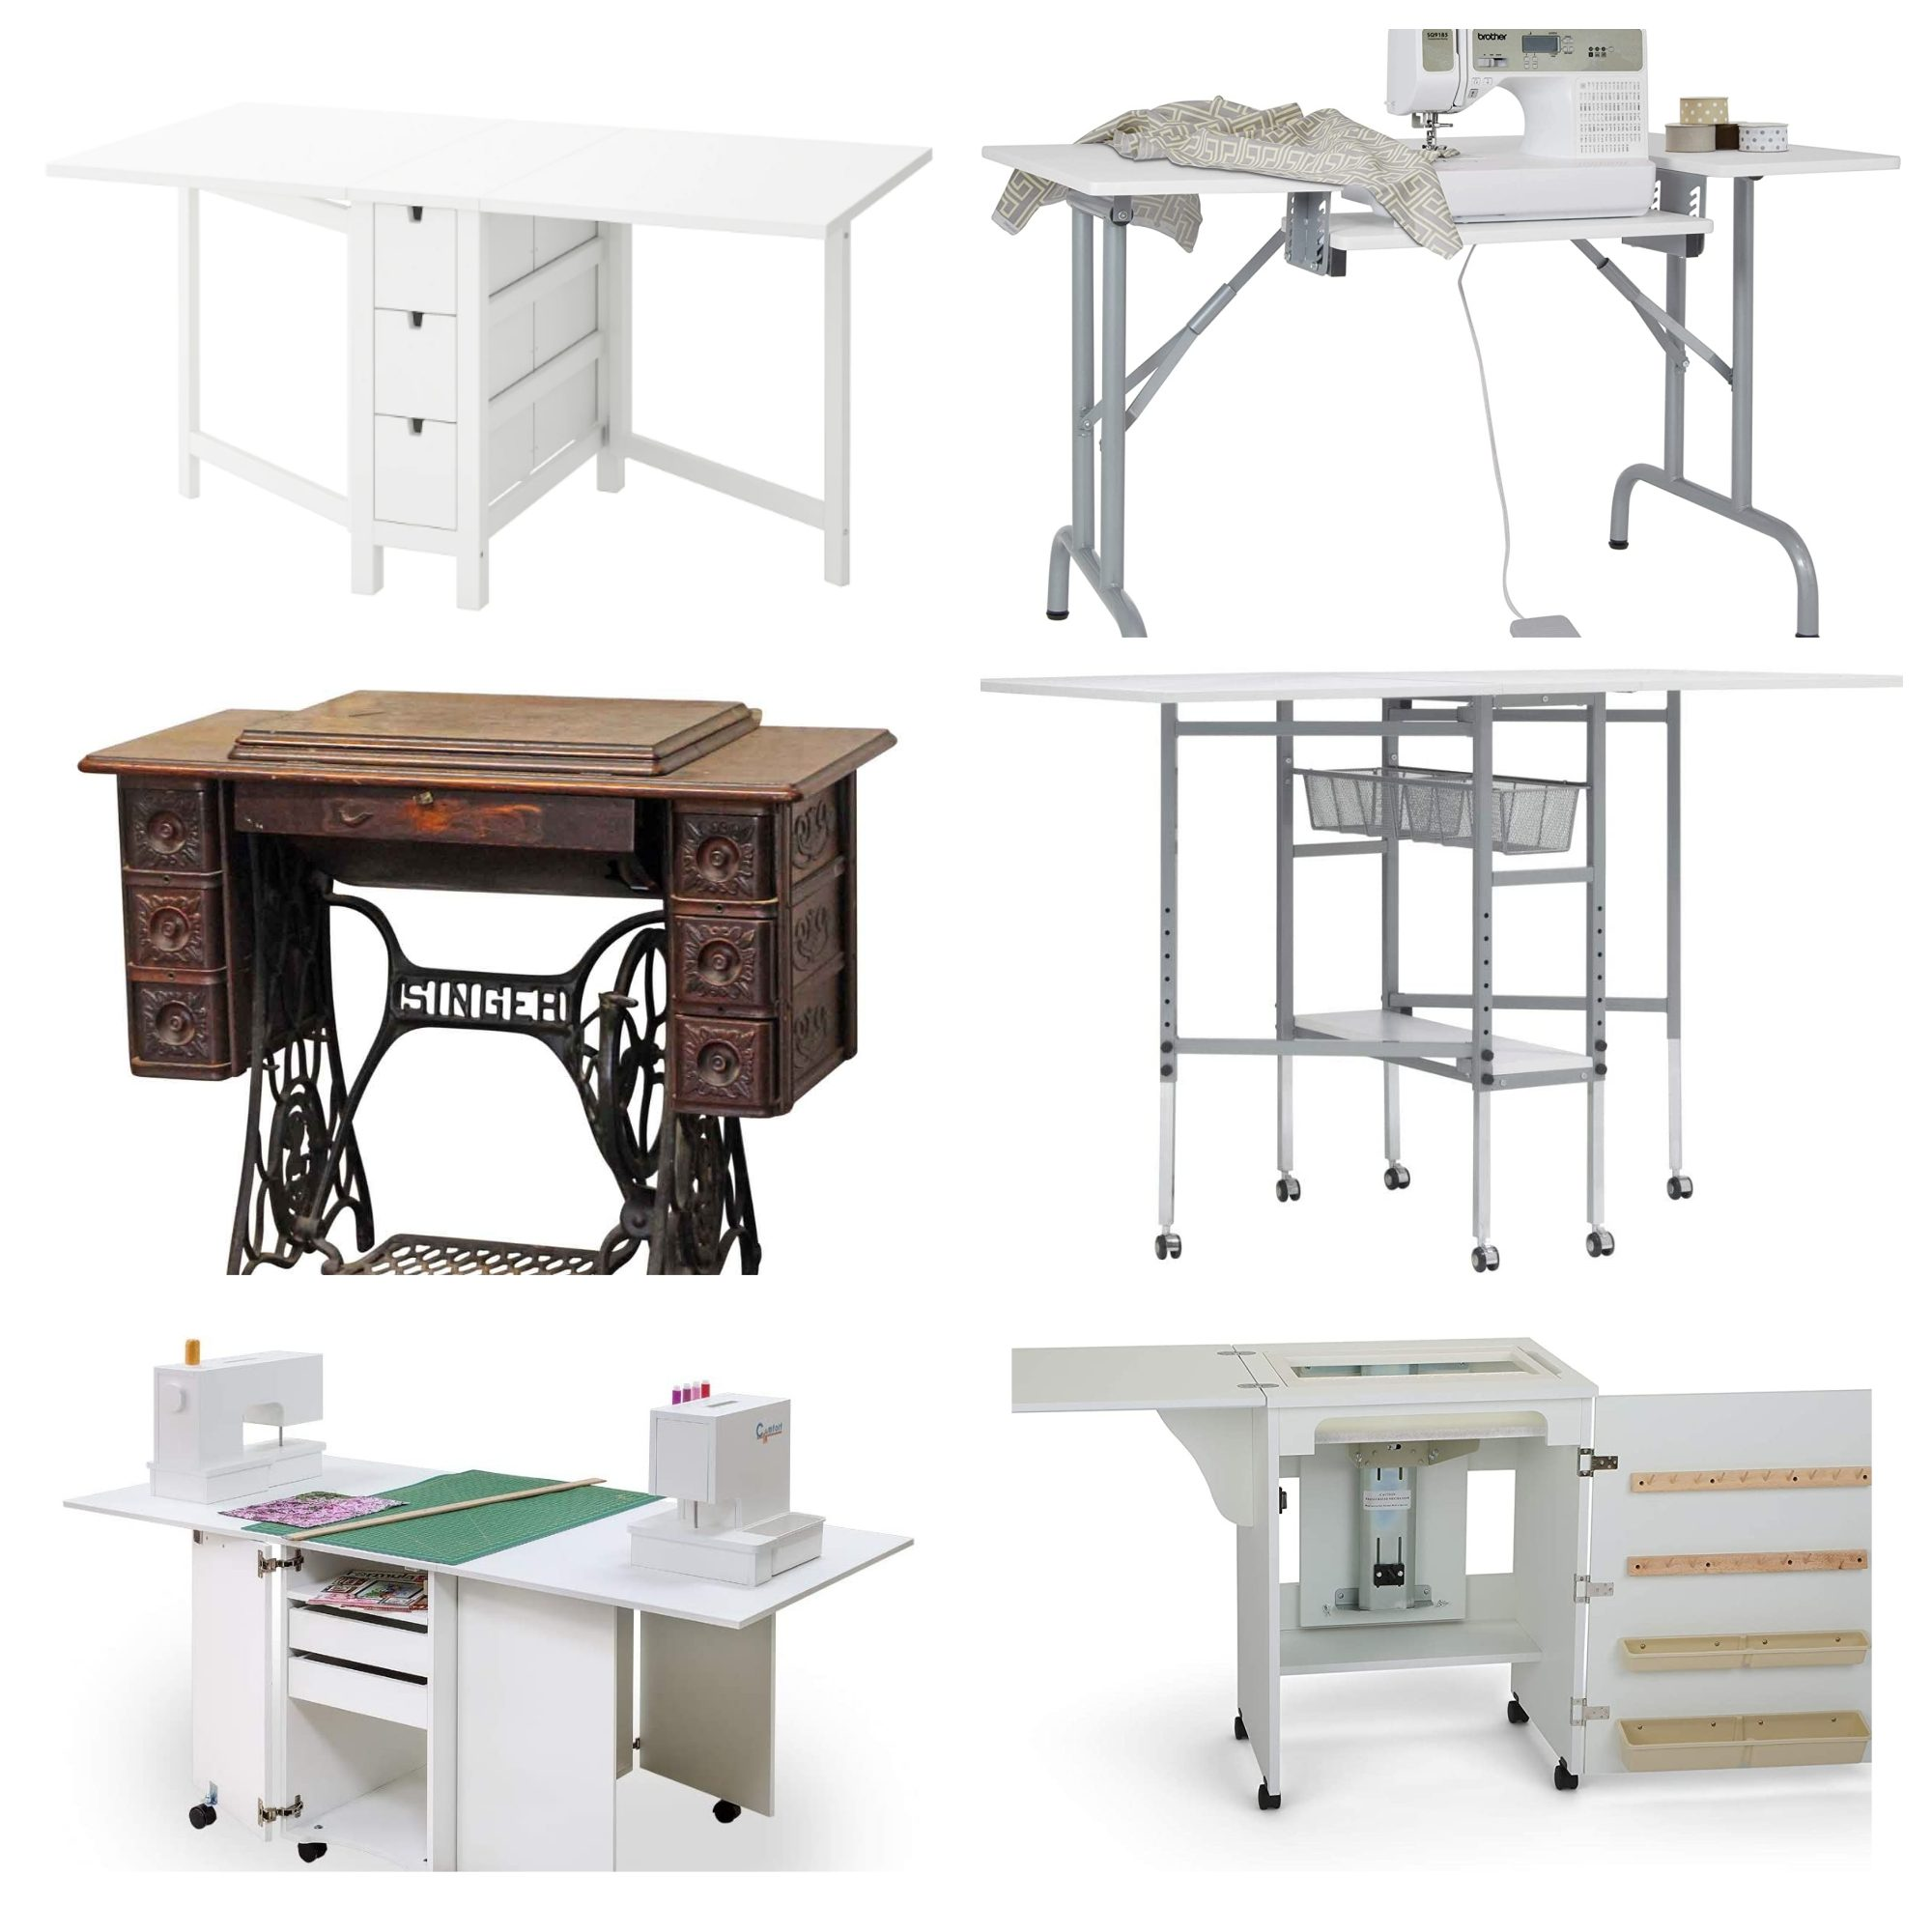 10 of the best sewing machine tables in 2020